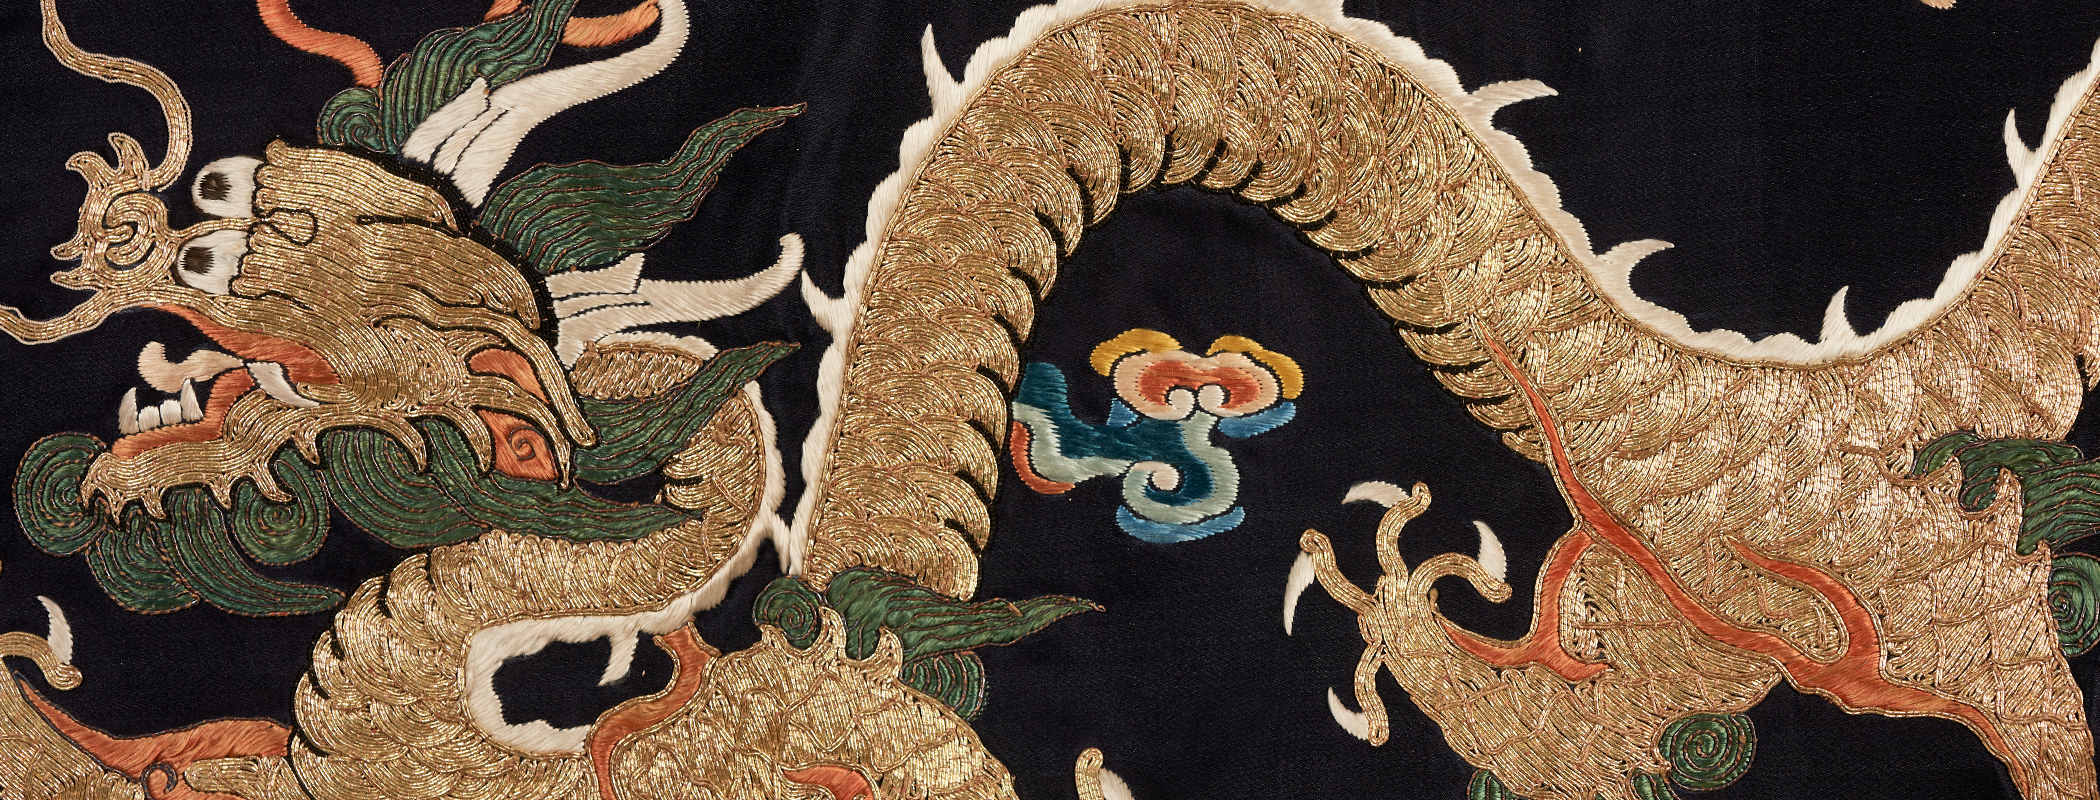 a golden dragon embroidered on a black background